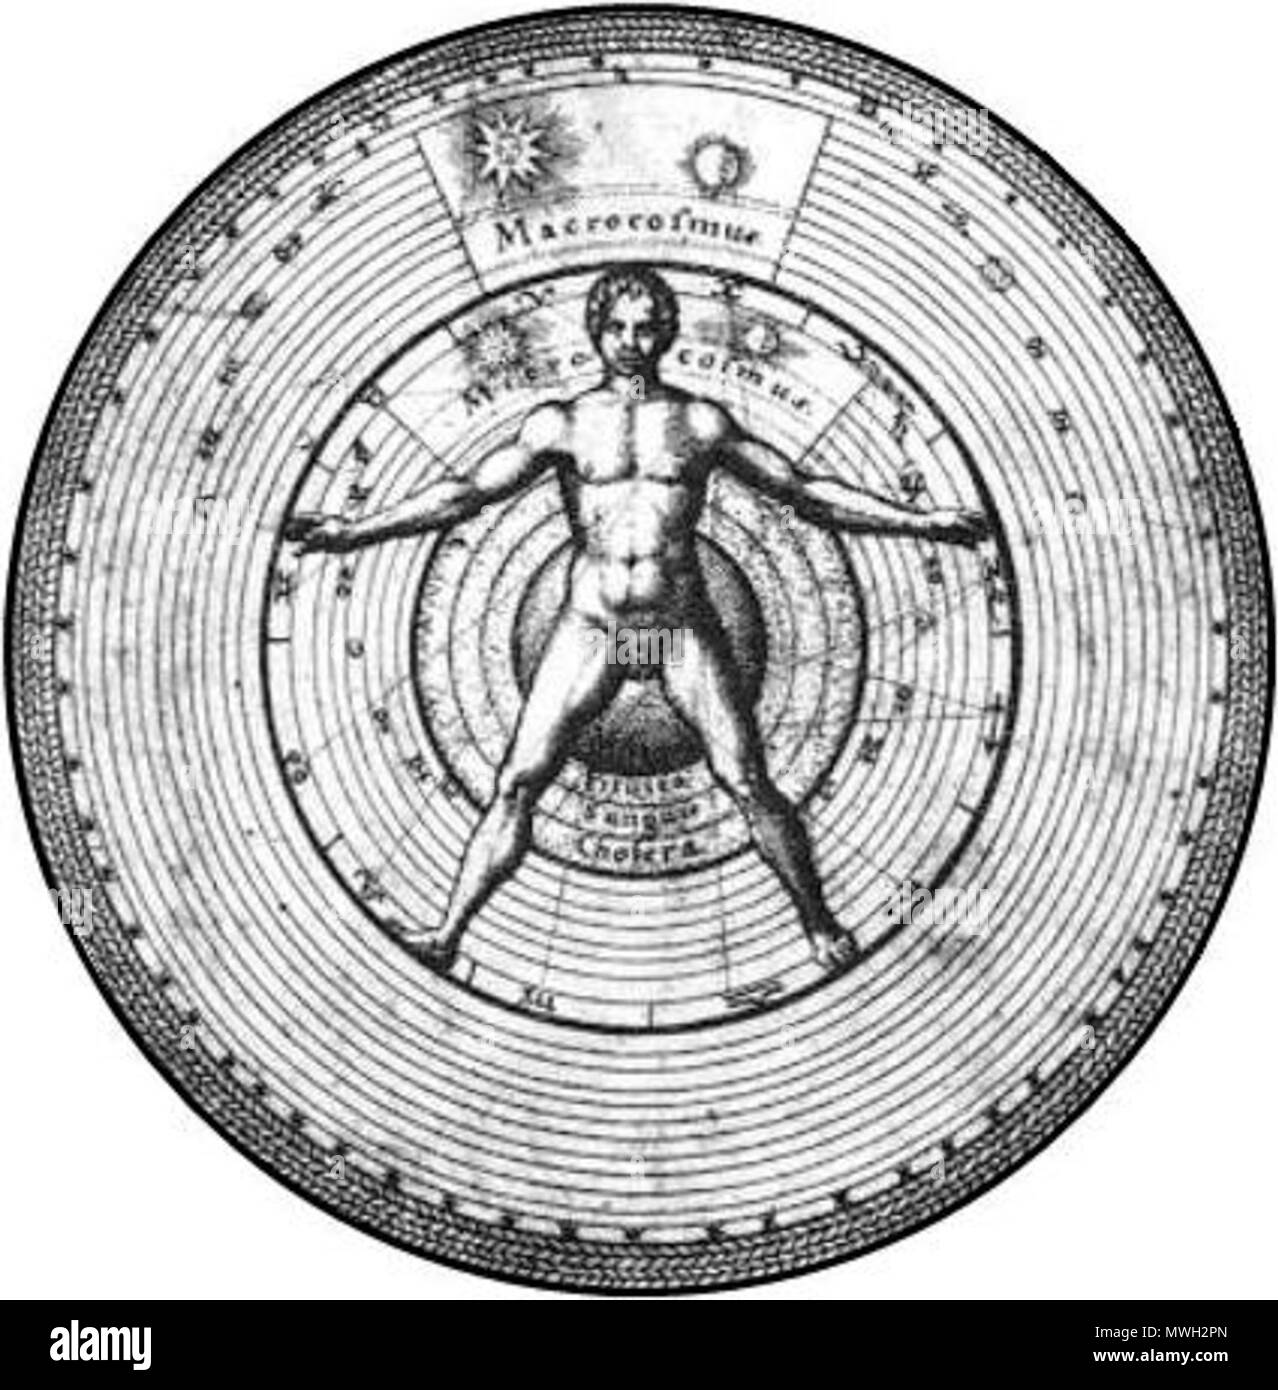 . English: Chart of Micro-cosmos in Stoicism, by Robert Fludd, Utriusque cosmi: Metaphysica, Physica atque Technica Historia, Oppenhemii, 1617 . January 1999. Scroll of Stoicism 415 Micro Cosmo in Achamoth - Stock Image